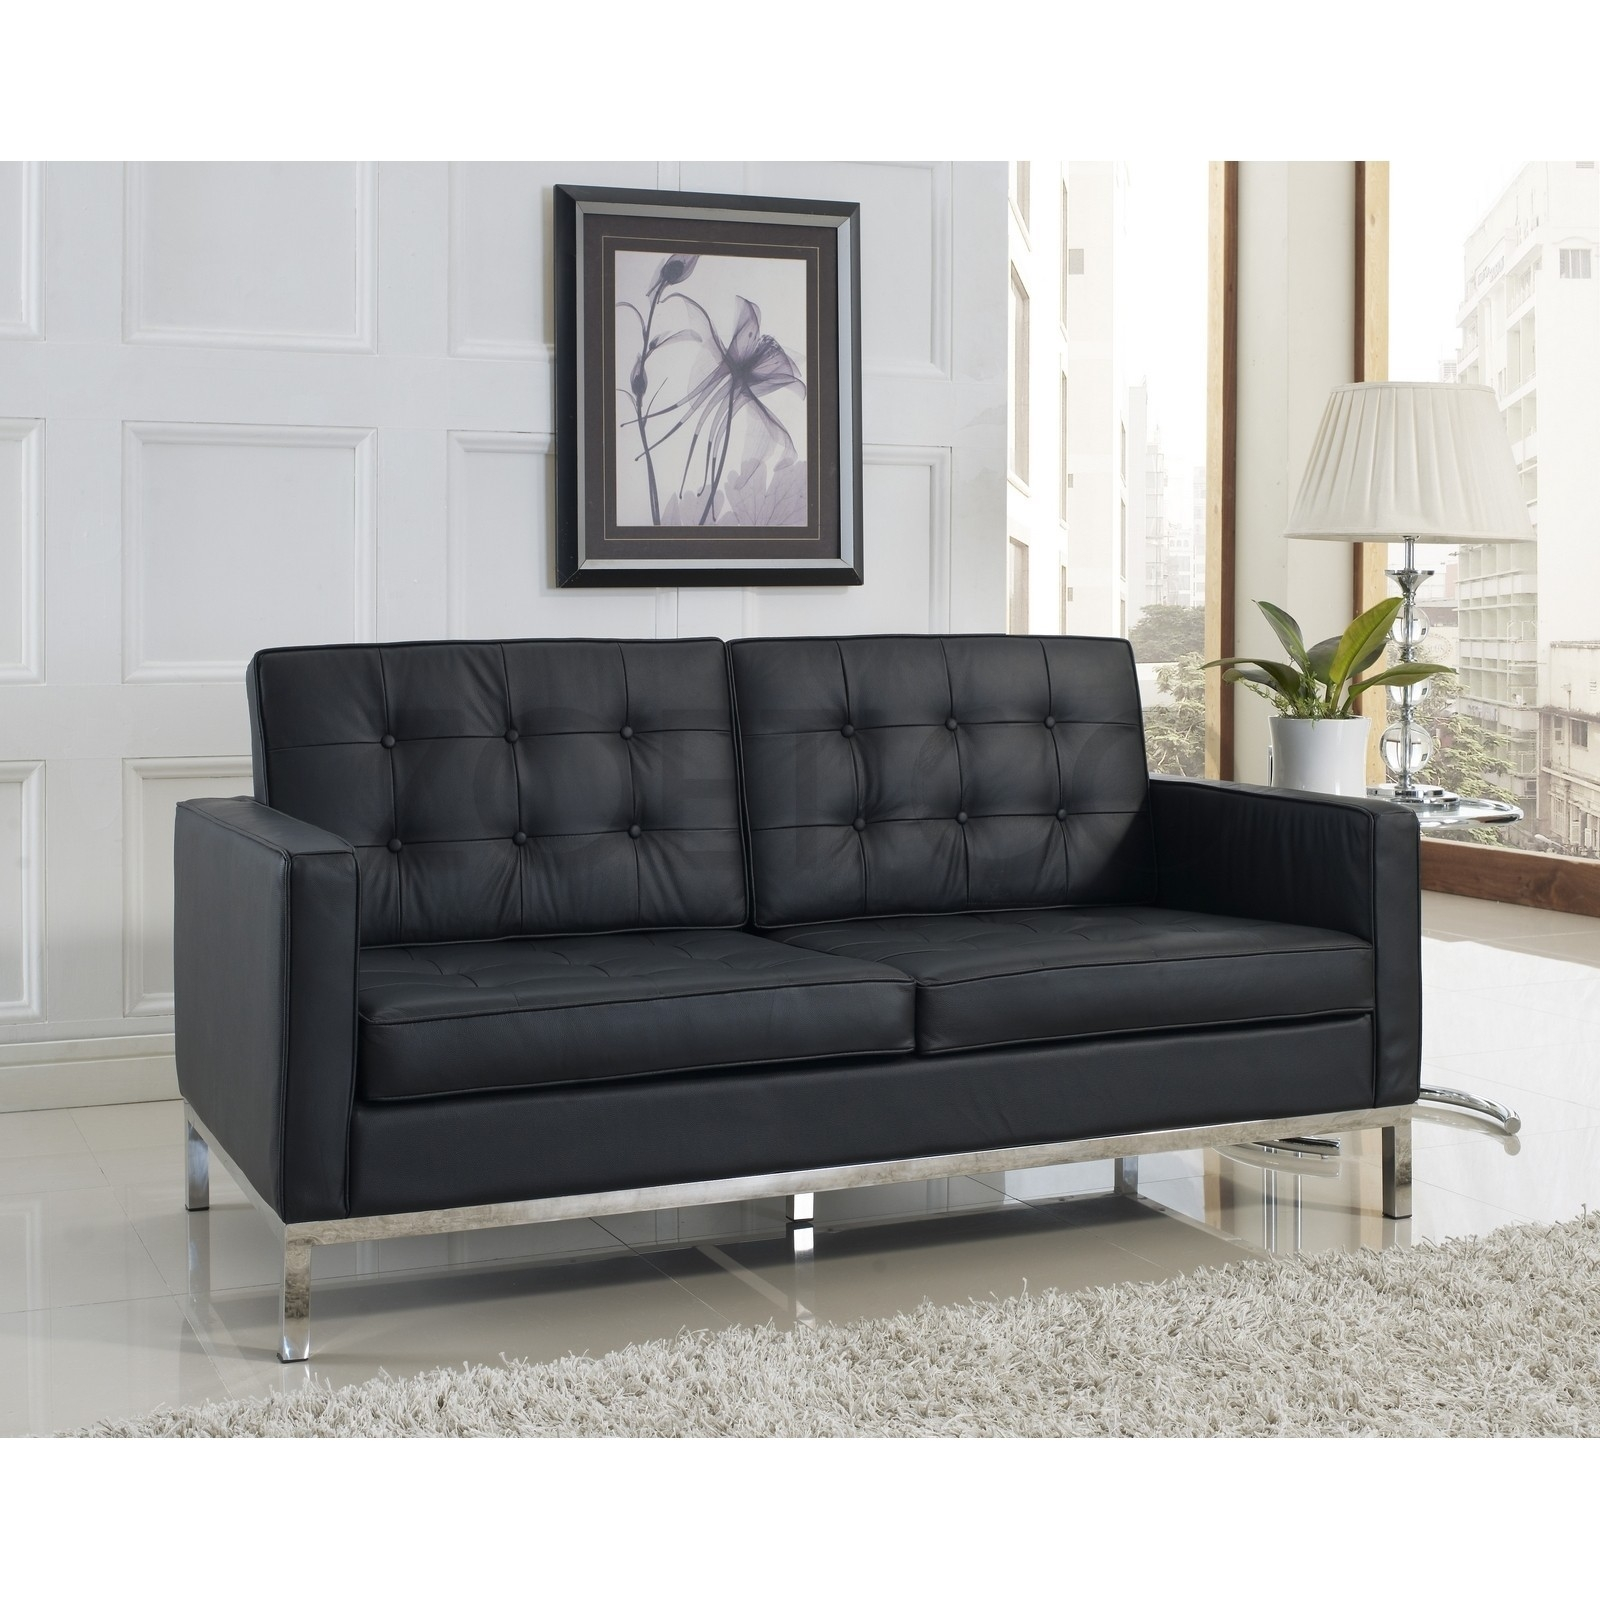 Sofas Center Florencell Sofa Reproduction Weightflorence Chaise Regarding Florence Leather Sofas (Image 13 of 15)